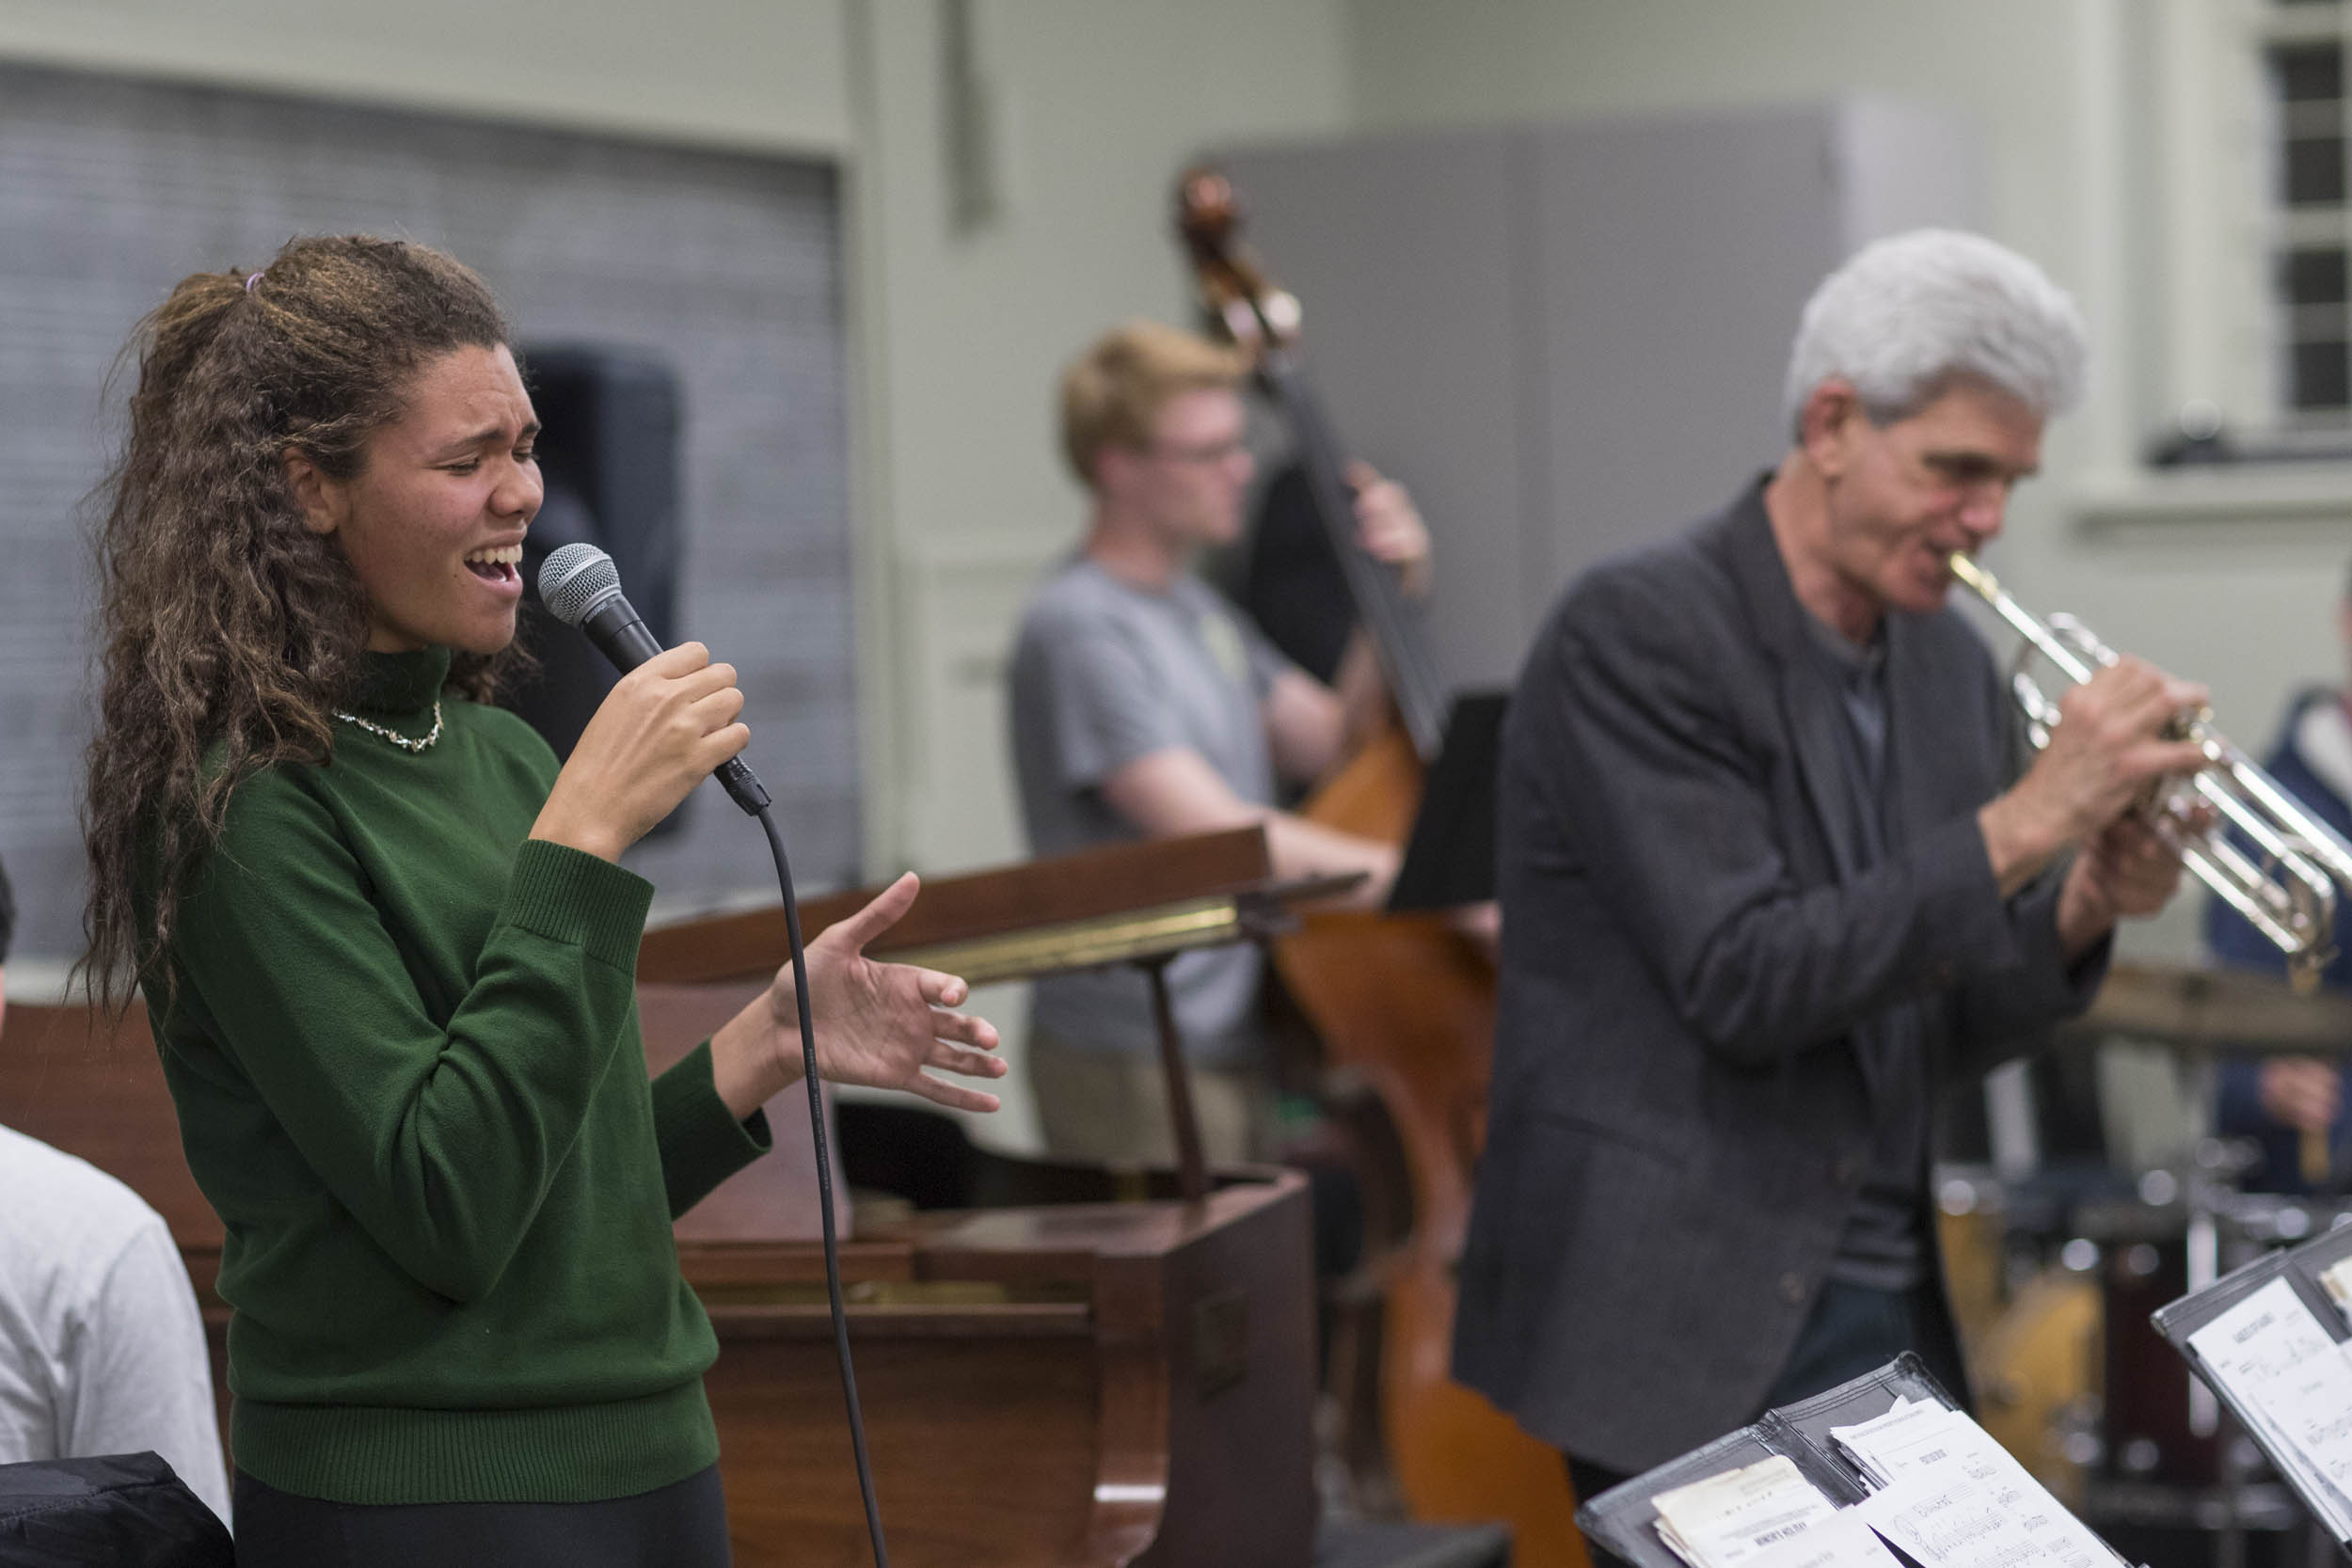 Second-year student Joy Collins, left, was a guest vocalist with the ensemble during Thursday's Facebook Live performance.